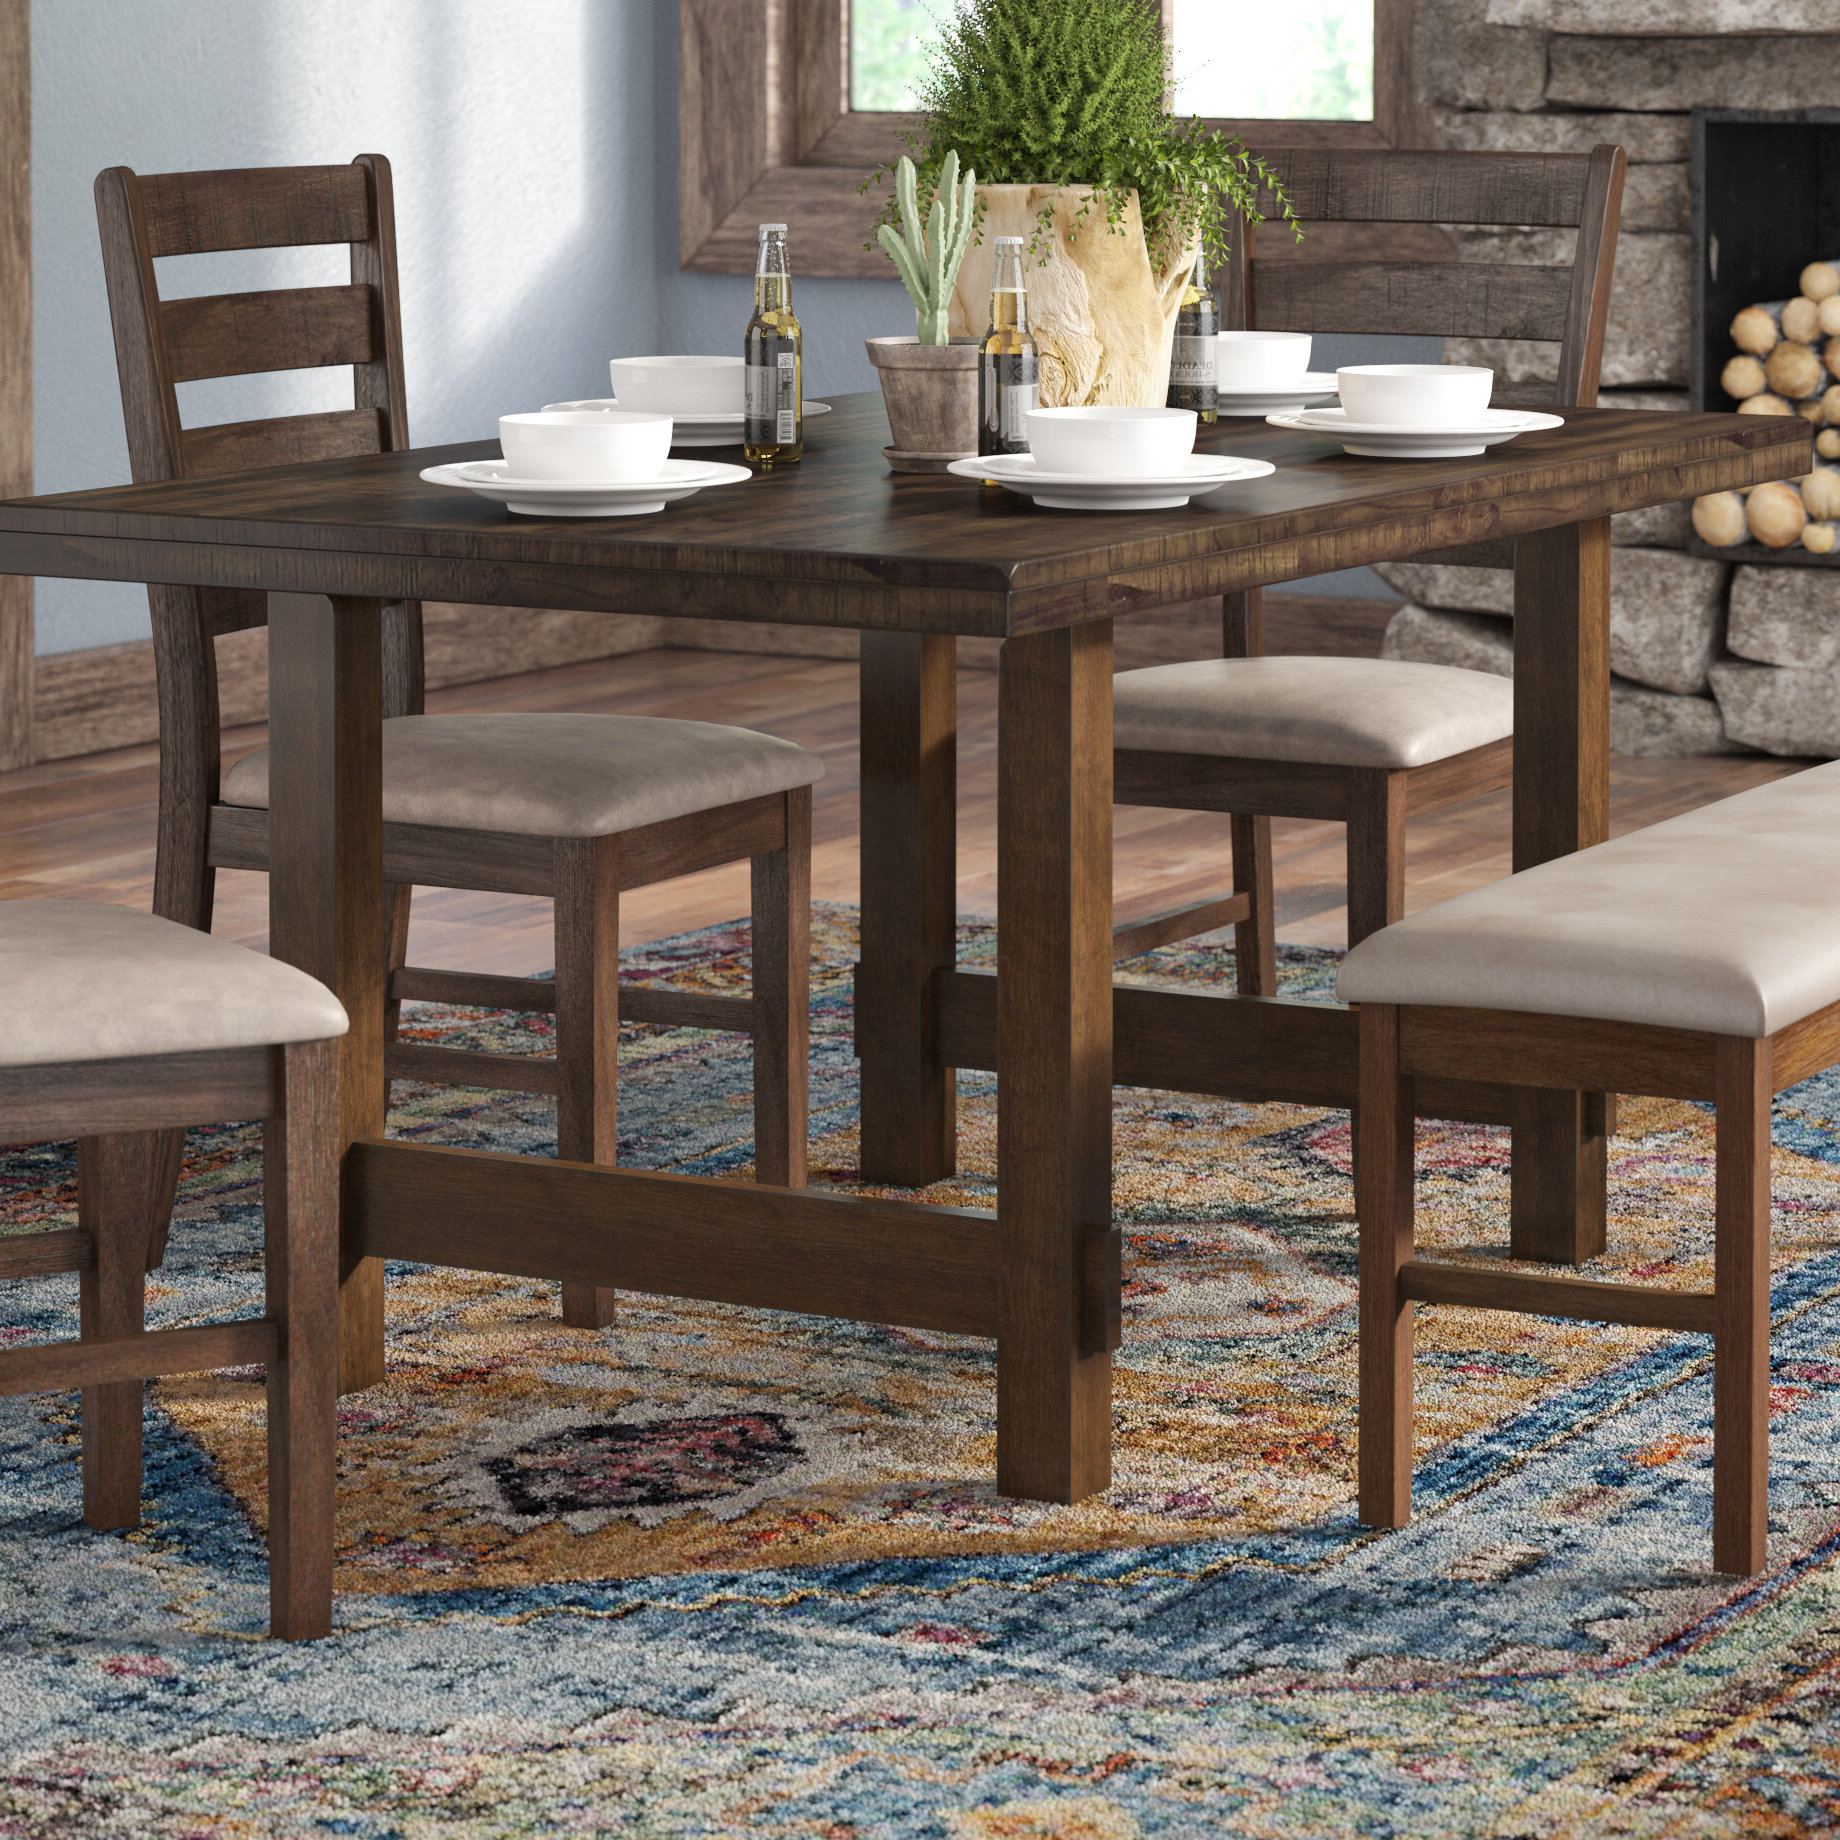 Charcoal Transitional 6 Seating Rectangular Dining Tables Within Current Trent Austin Design Channel Island Dining Table & Reviews (View 12 of 25)